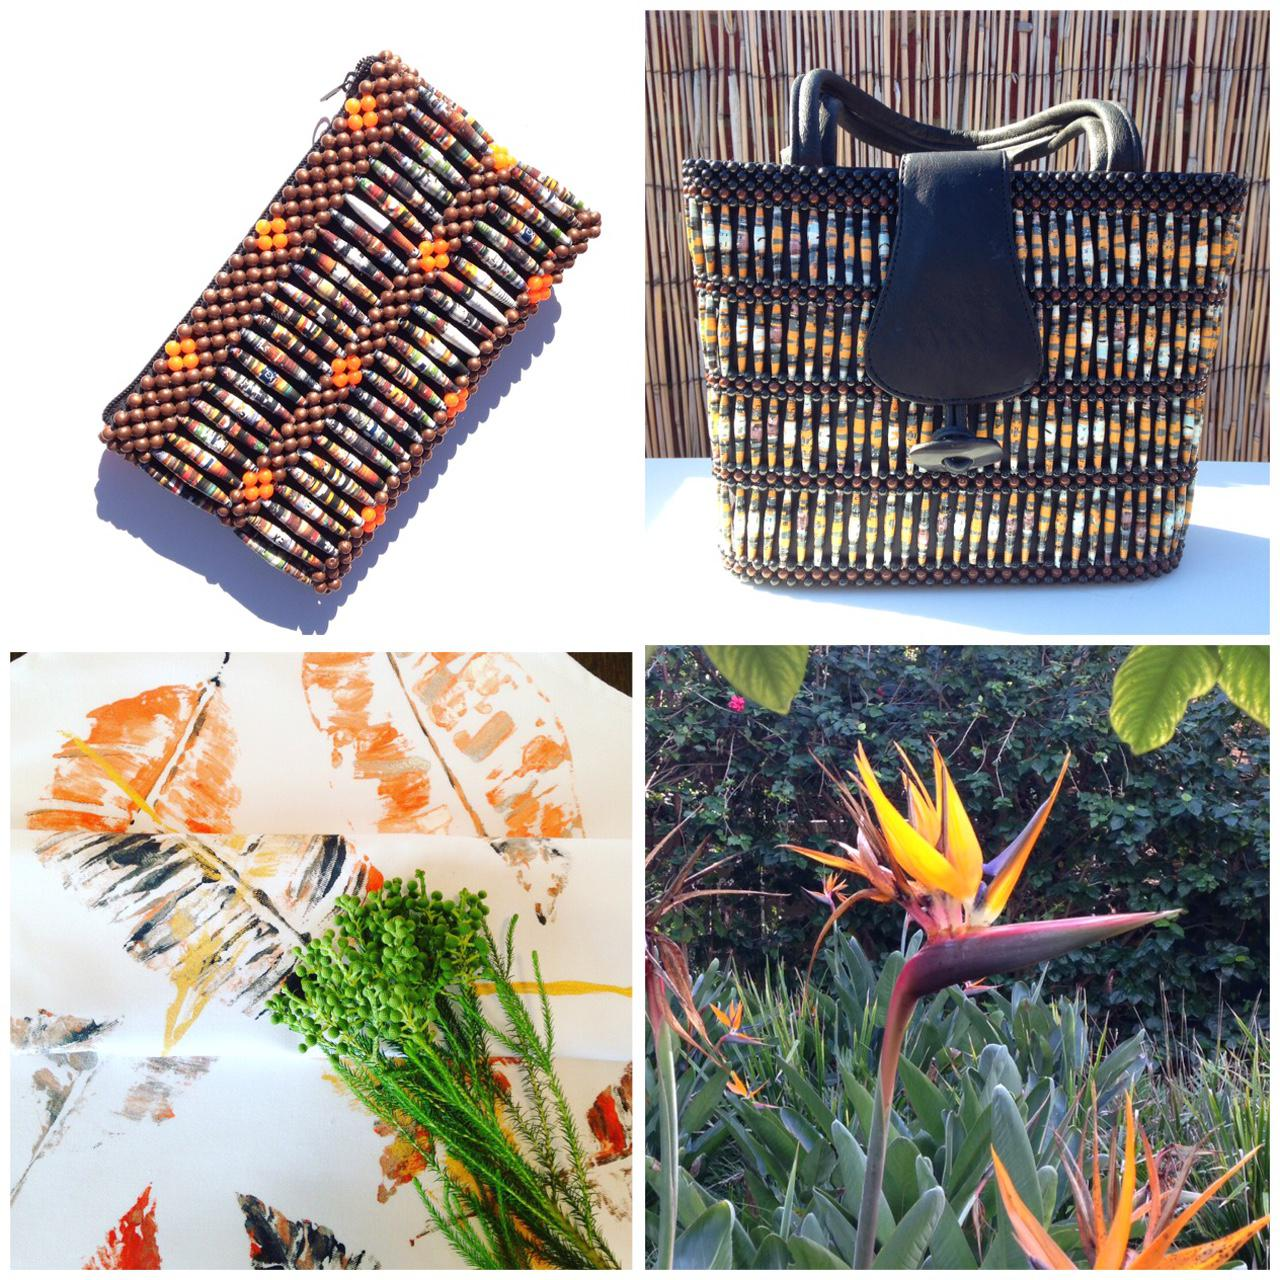 TROPICAL PARADISE - Recycled Magazine/Leather Handbags & Textiles